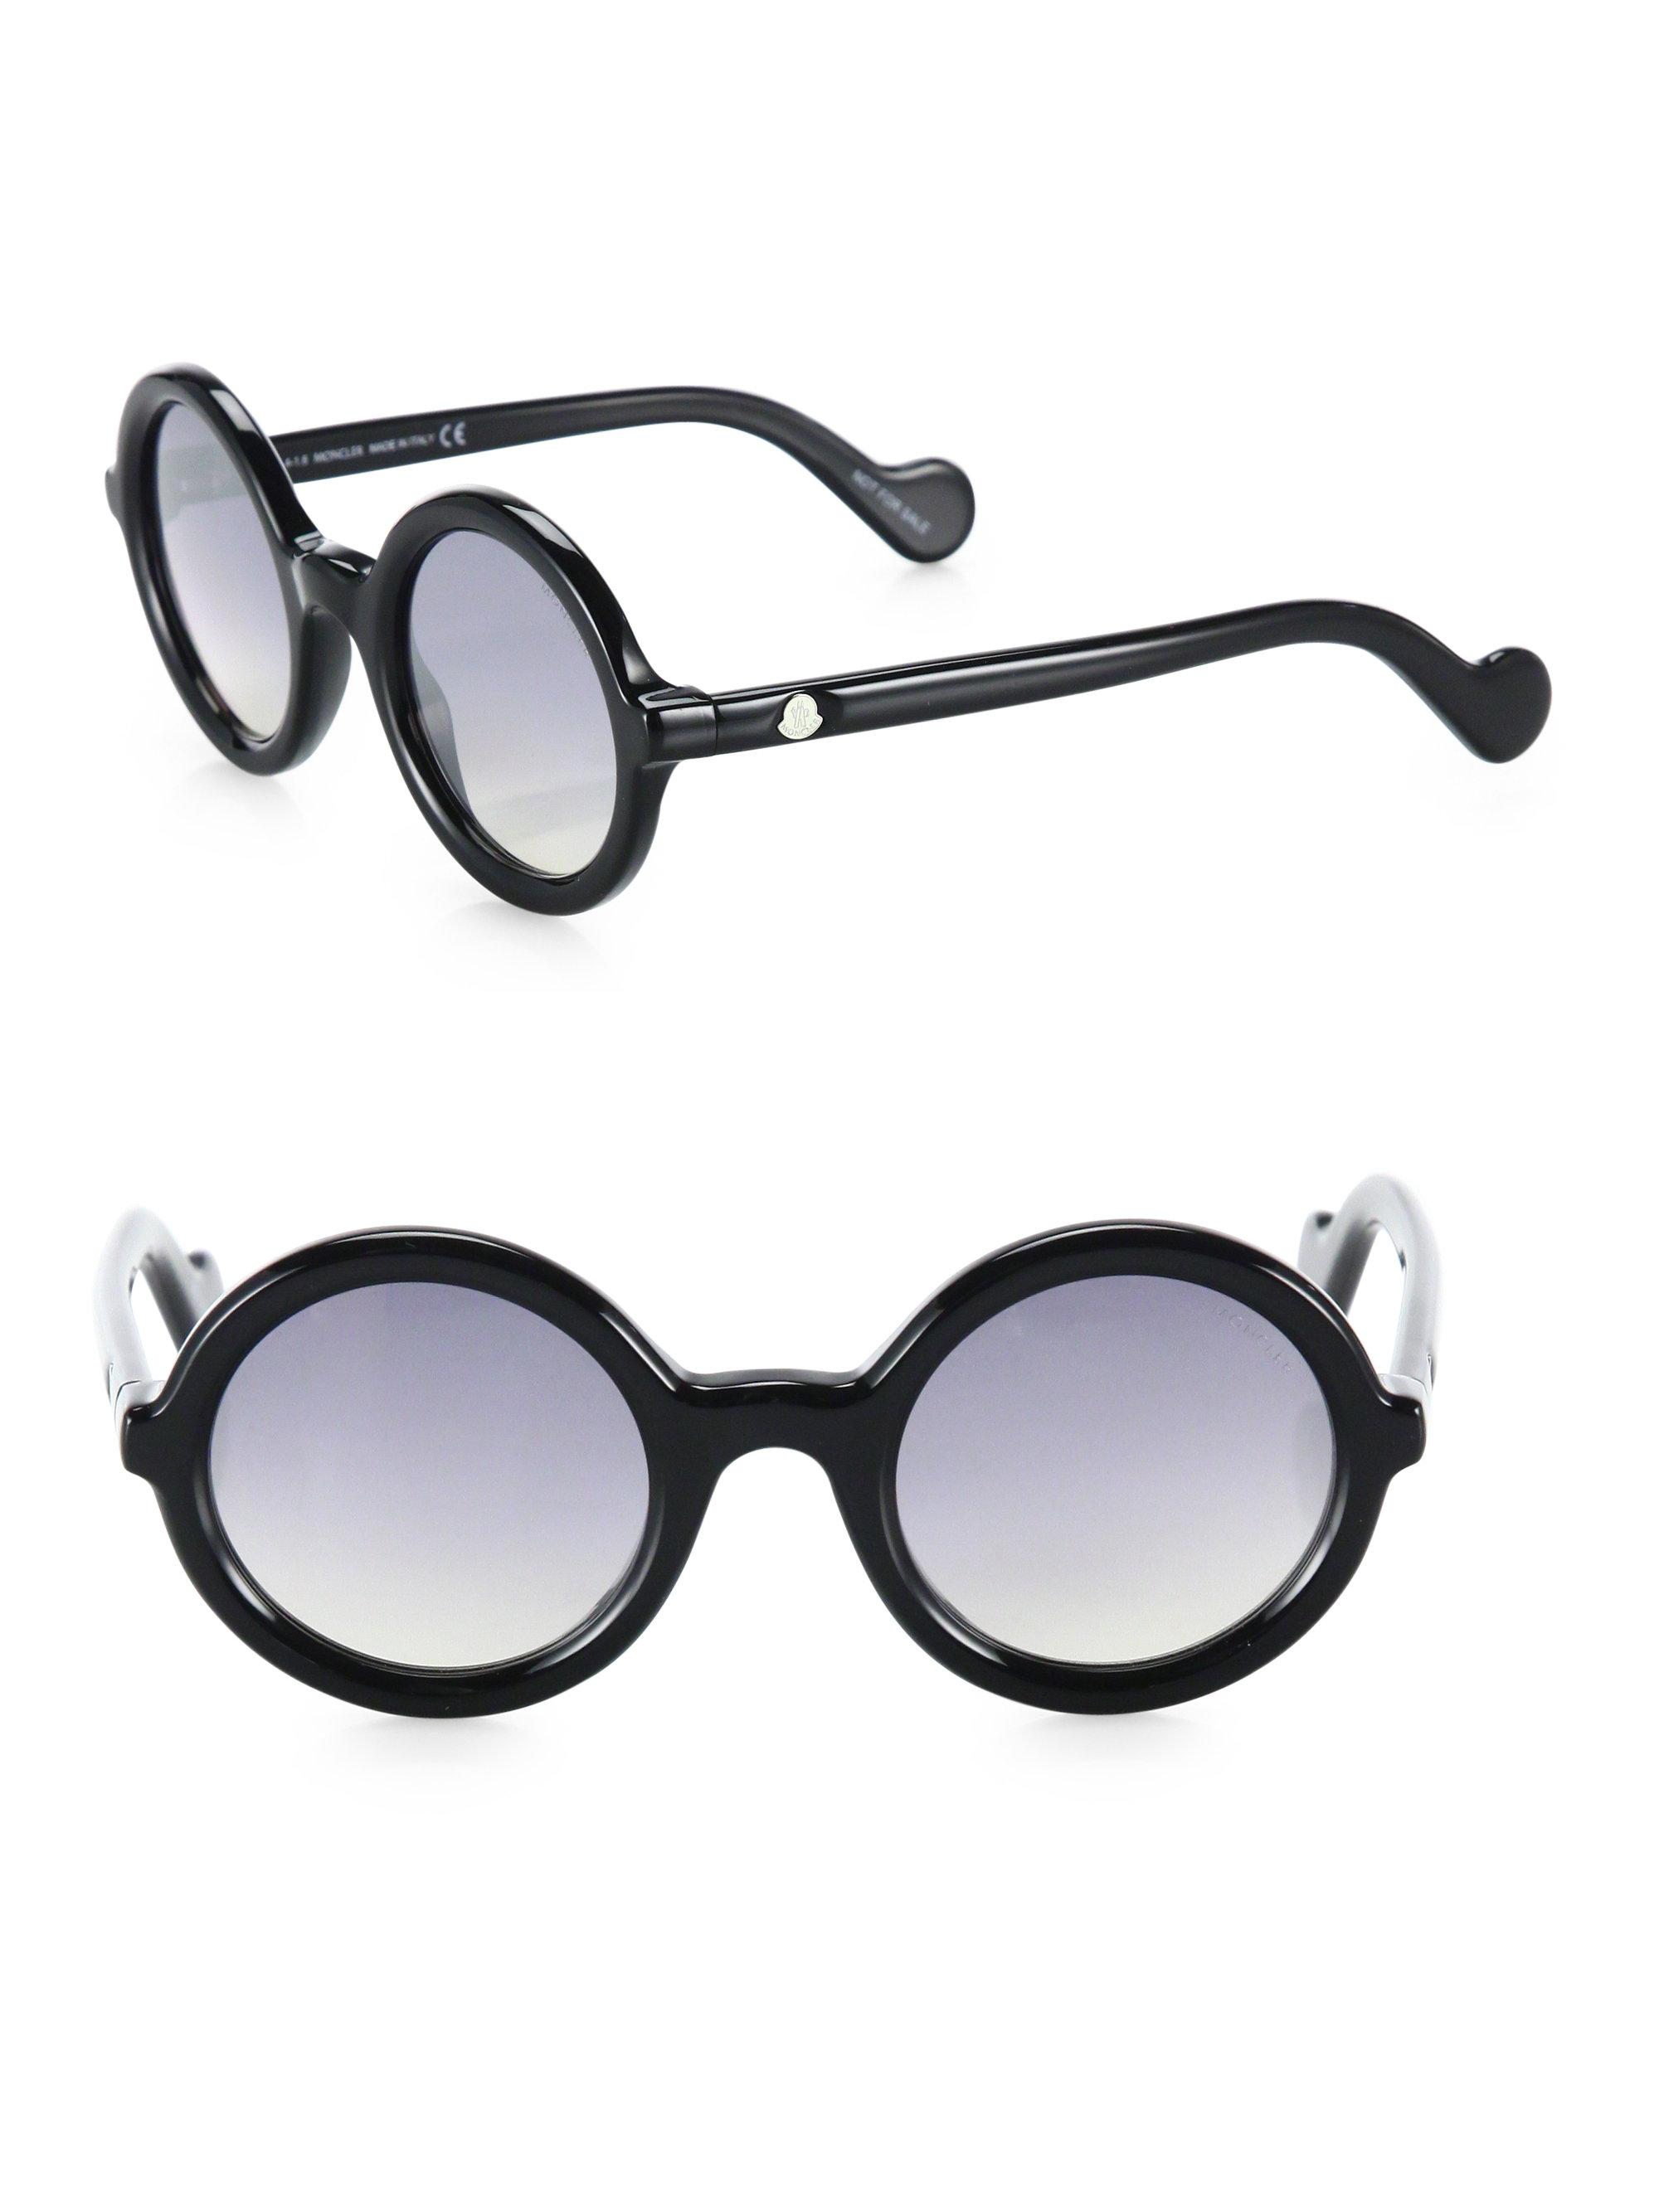 f64885718a3e Lyst - Moncler 50mm Mirrored Round Sunglasses in Black